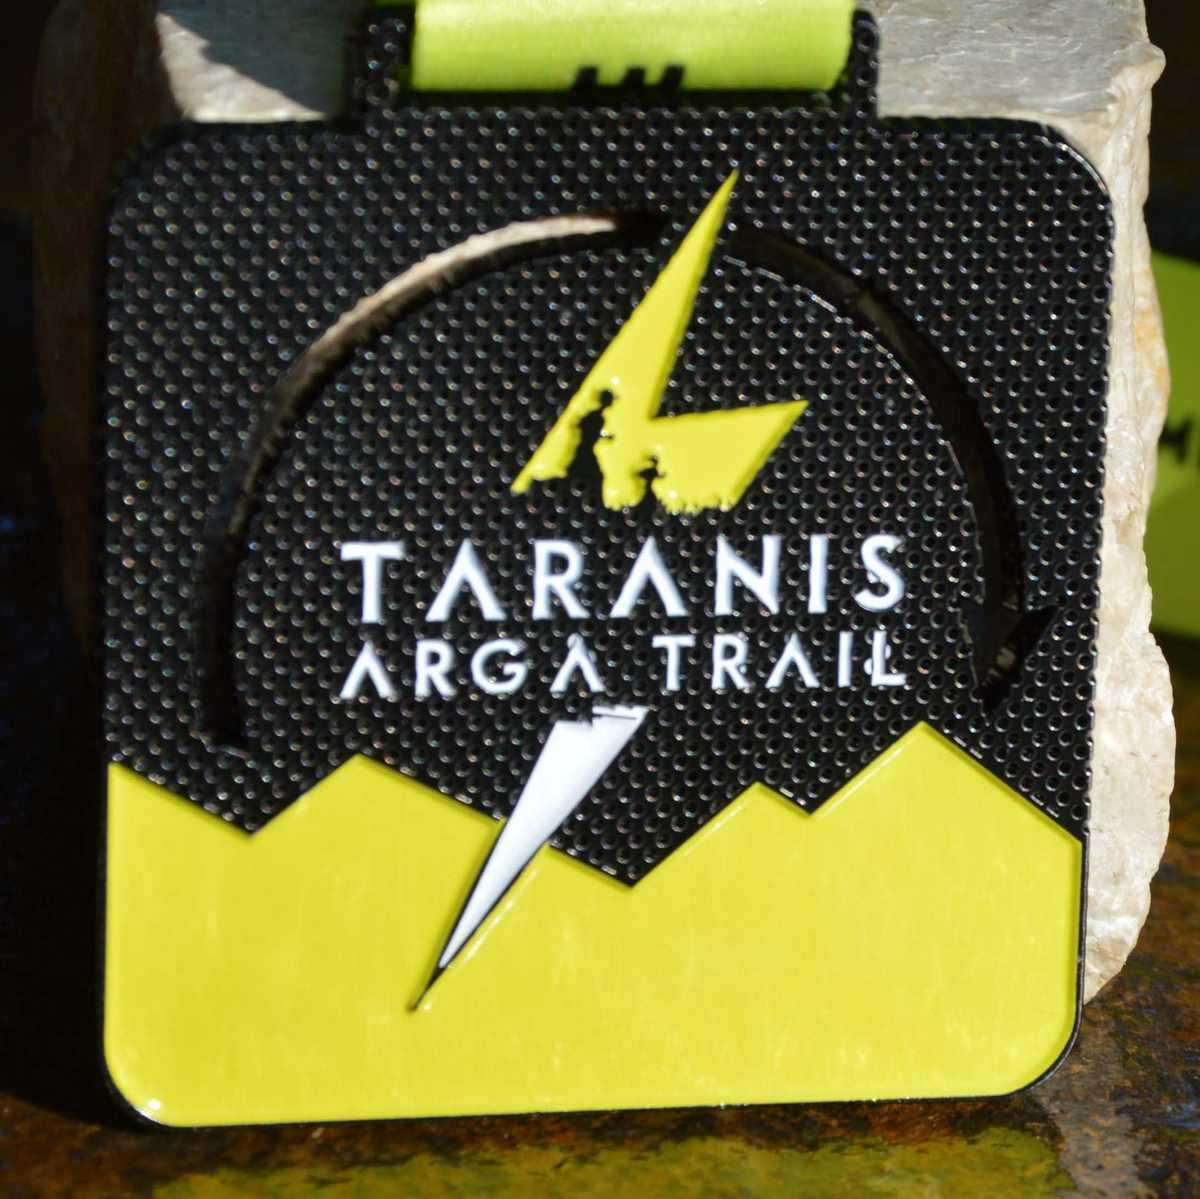 Black and yellow square medal made for the Taranis Arga Trail